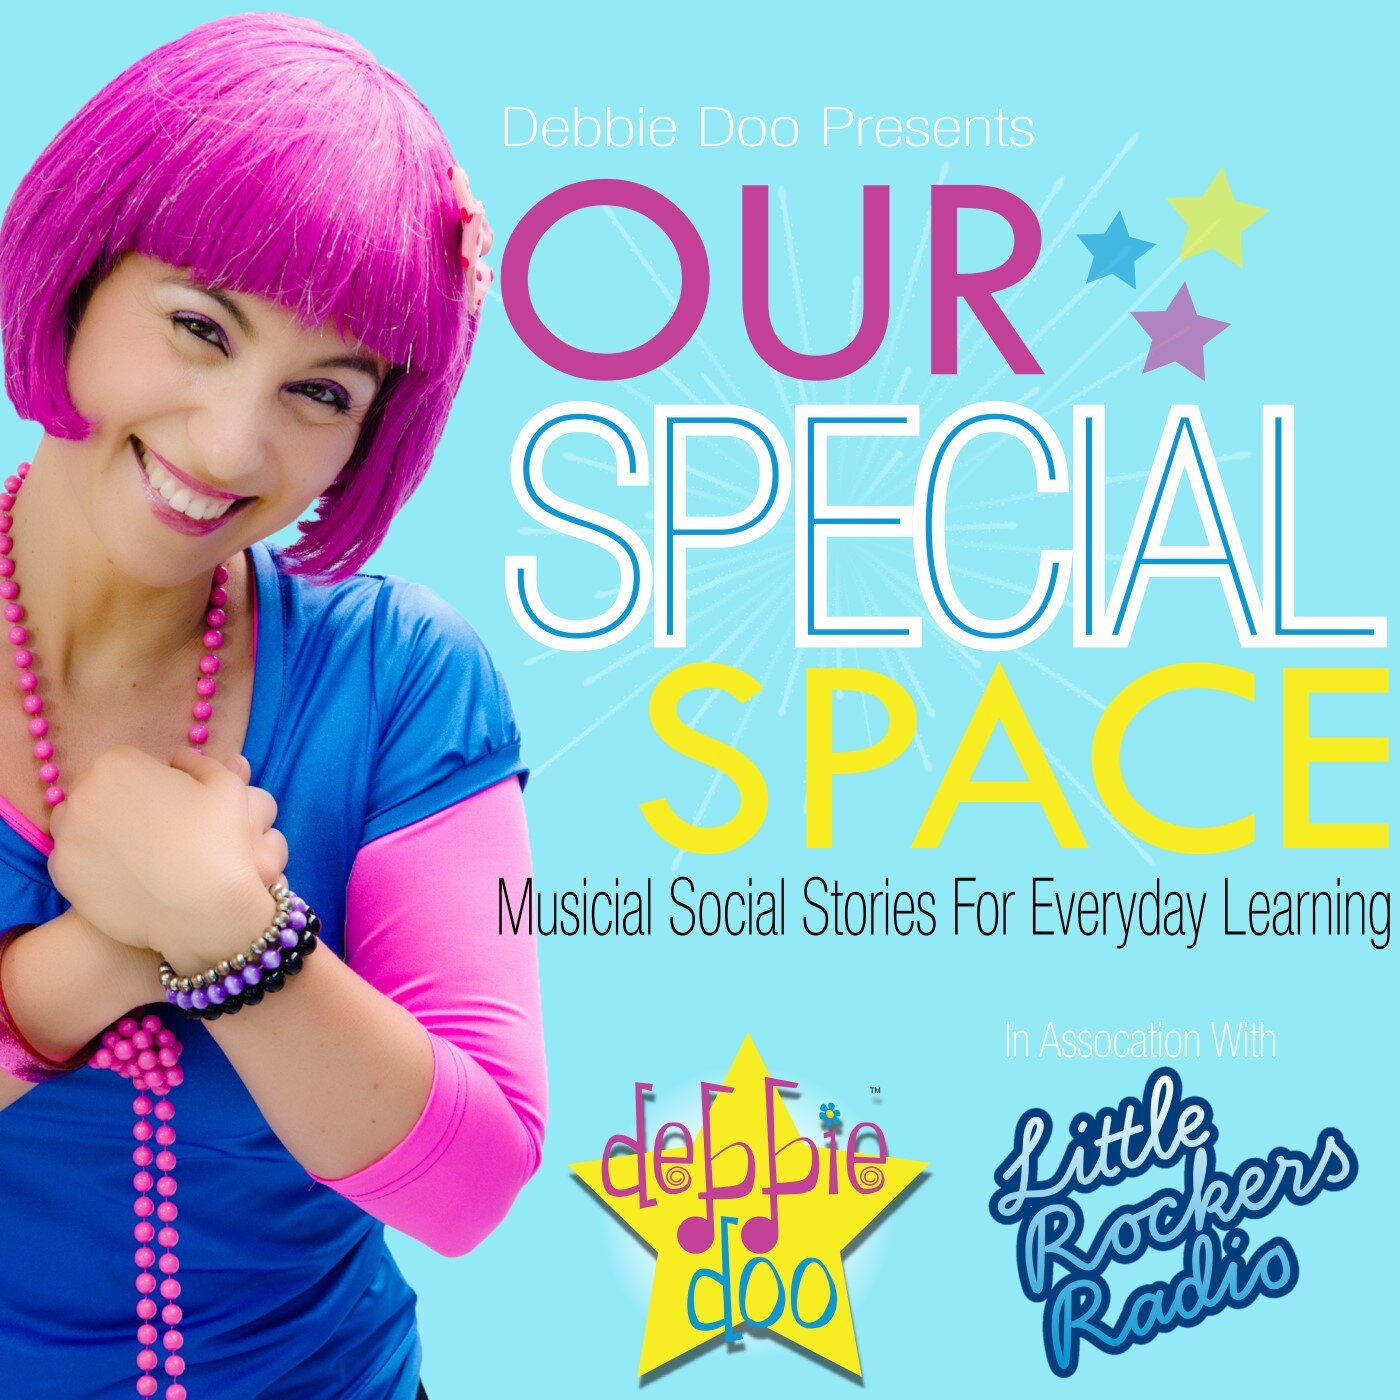 Our Special Space by Debbie Doo on Little Rockers Radio